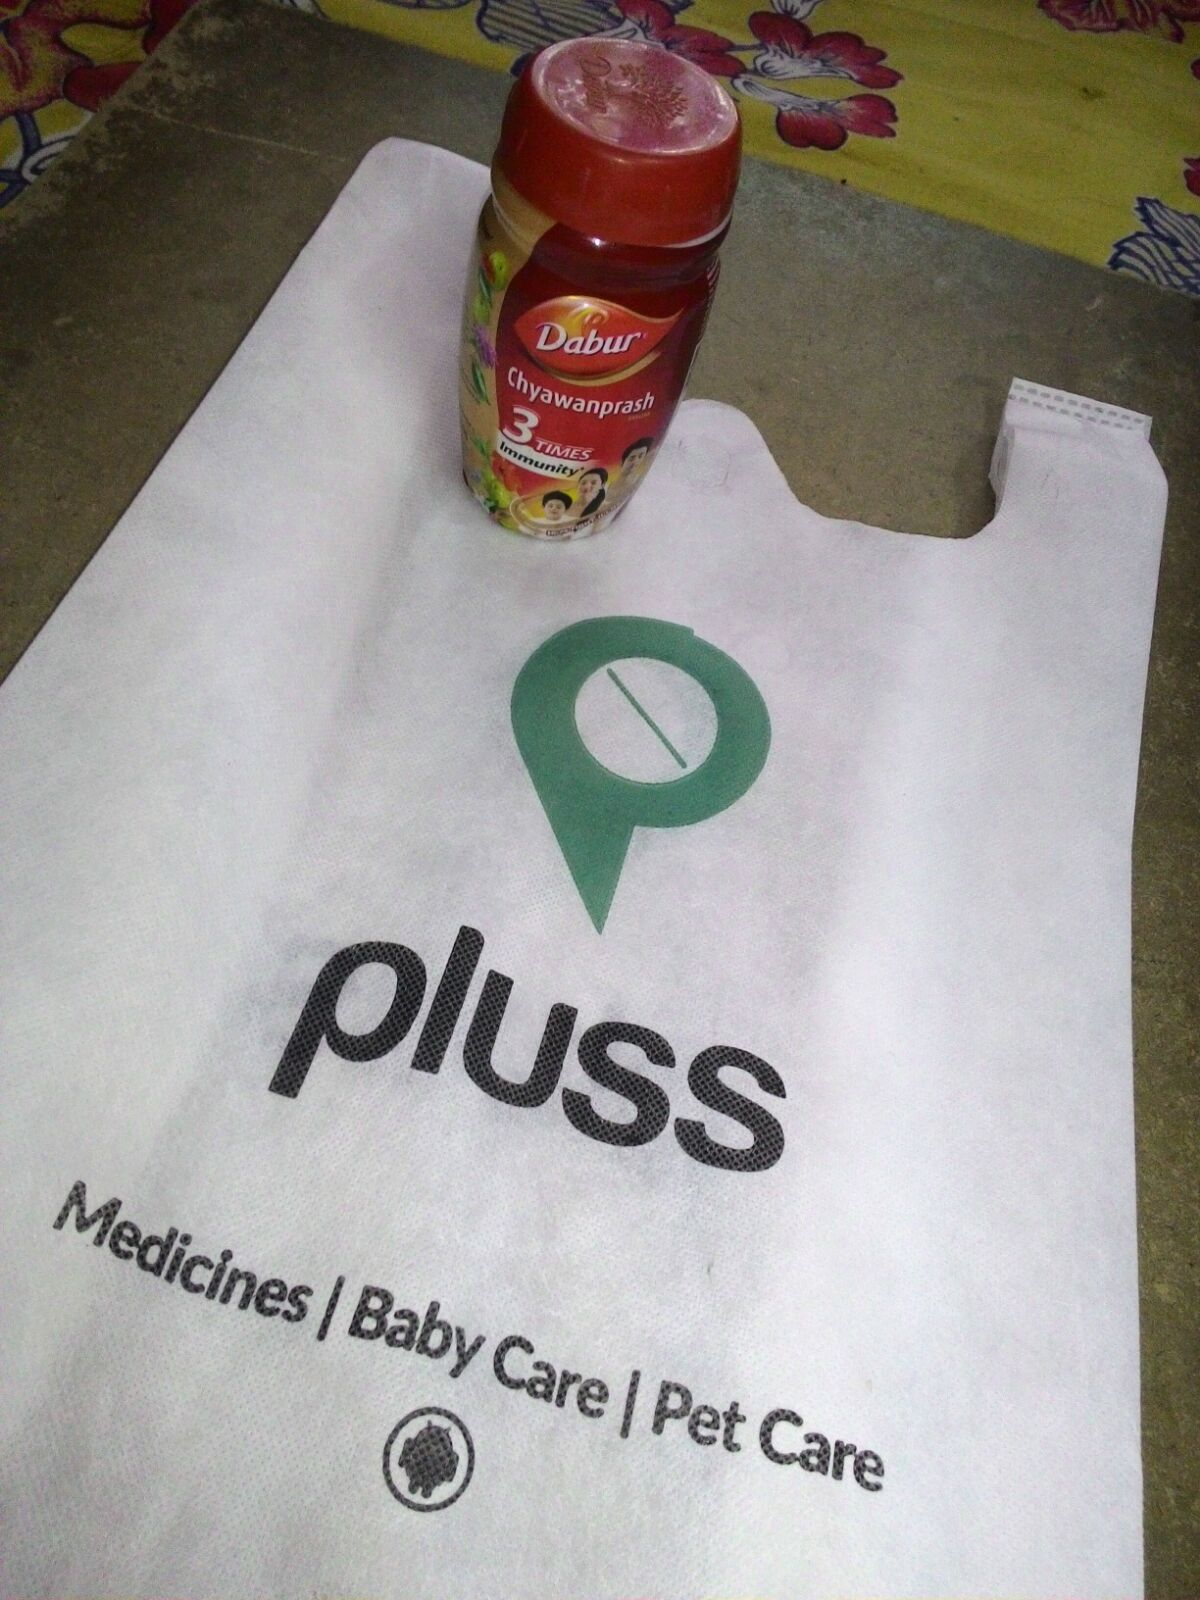 Pluss App Review: Flat ₹ 100 Off on First Order